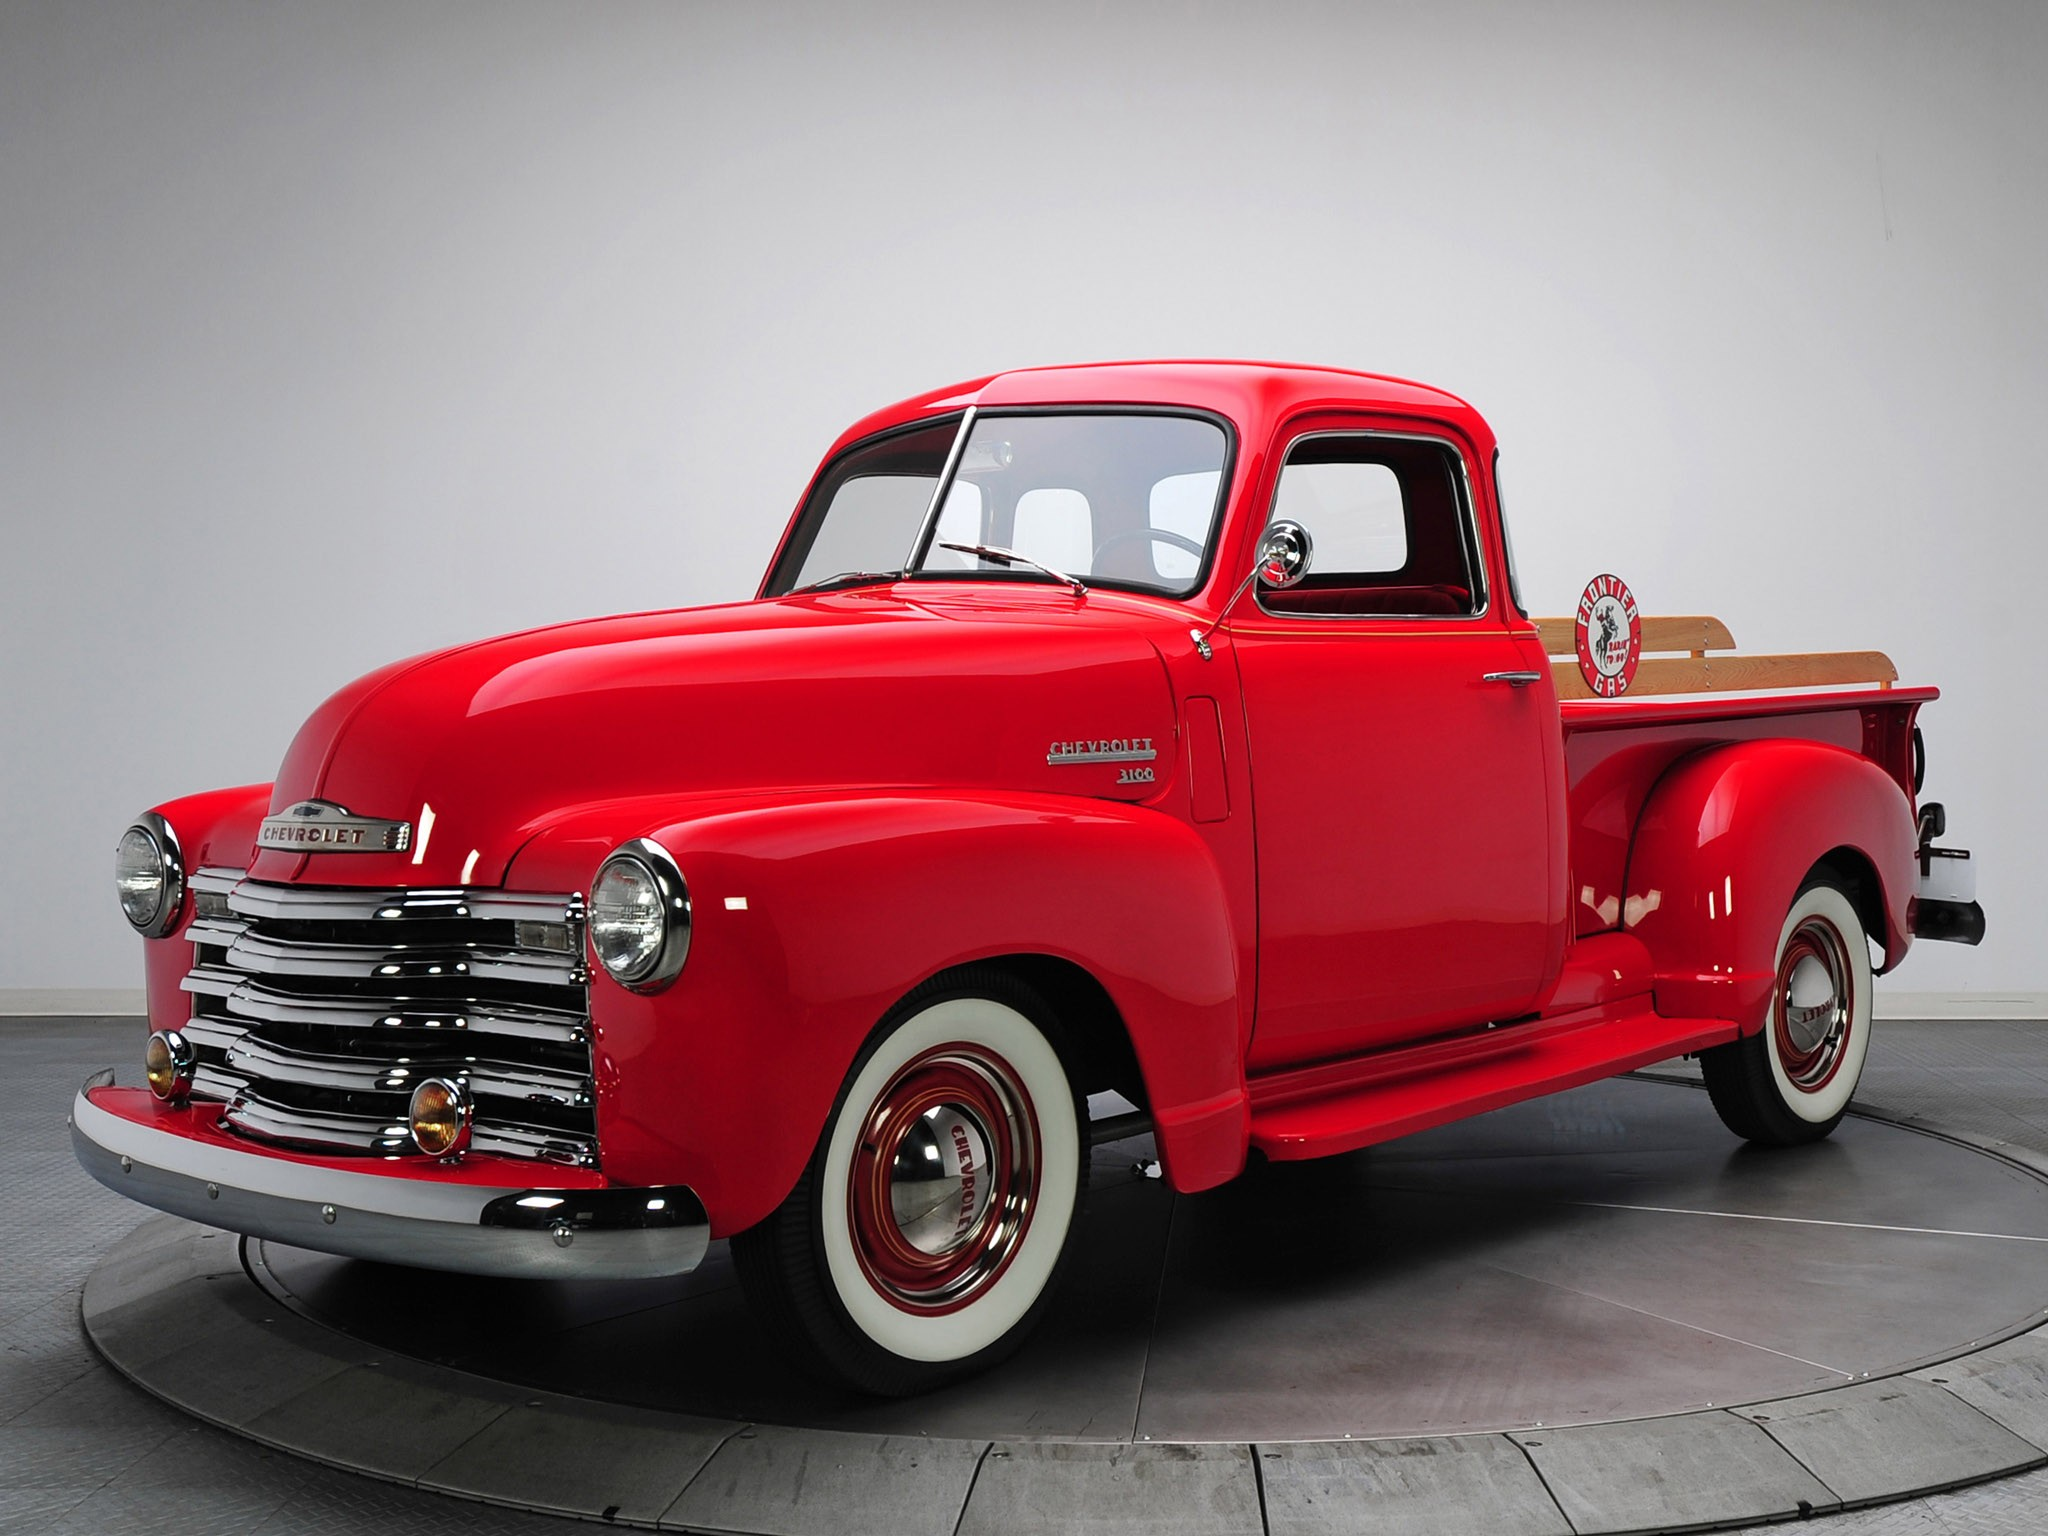 Chevrolet 3100 Pickup HP 3104 1950